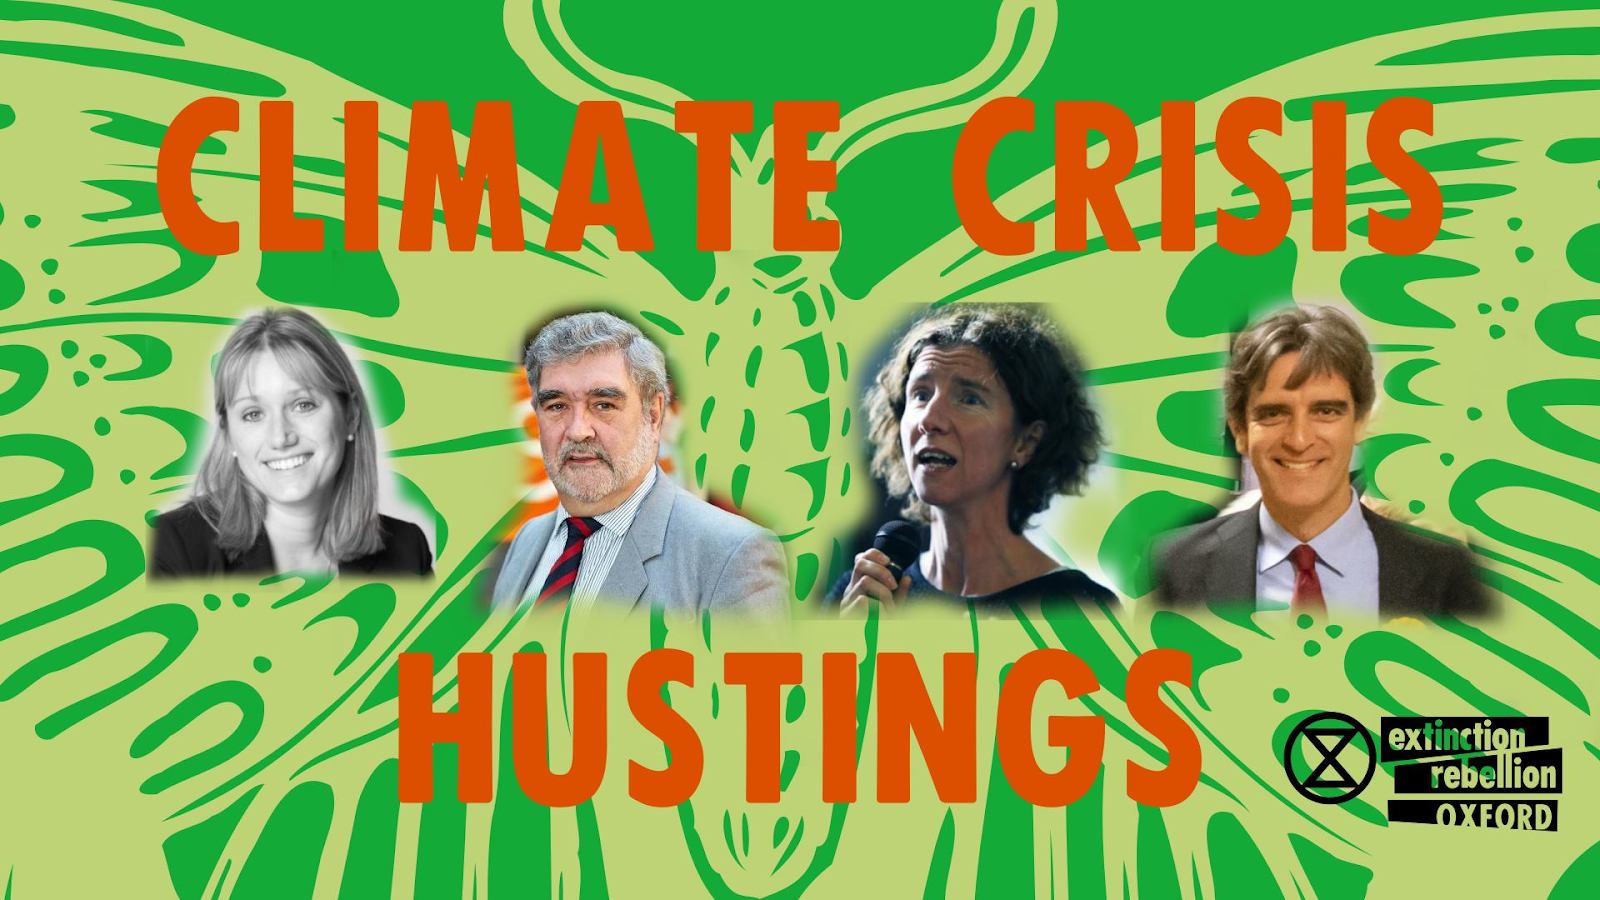 Climate Crisis hustings